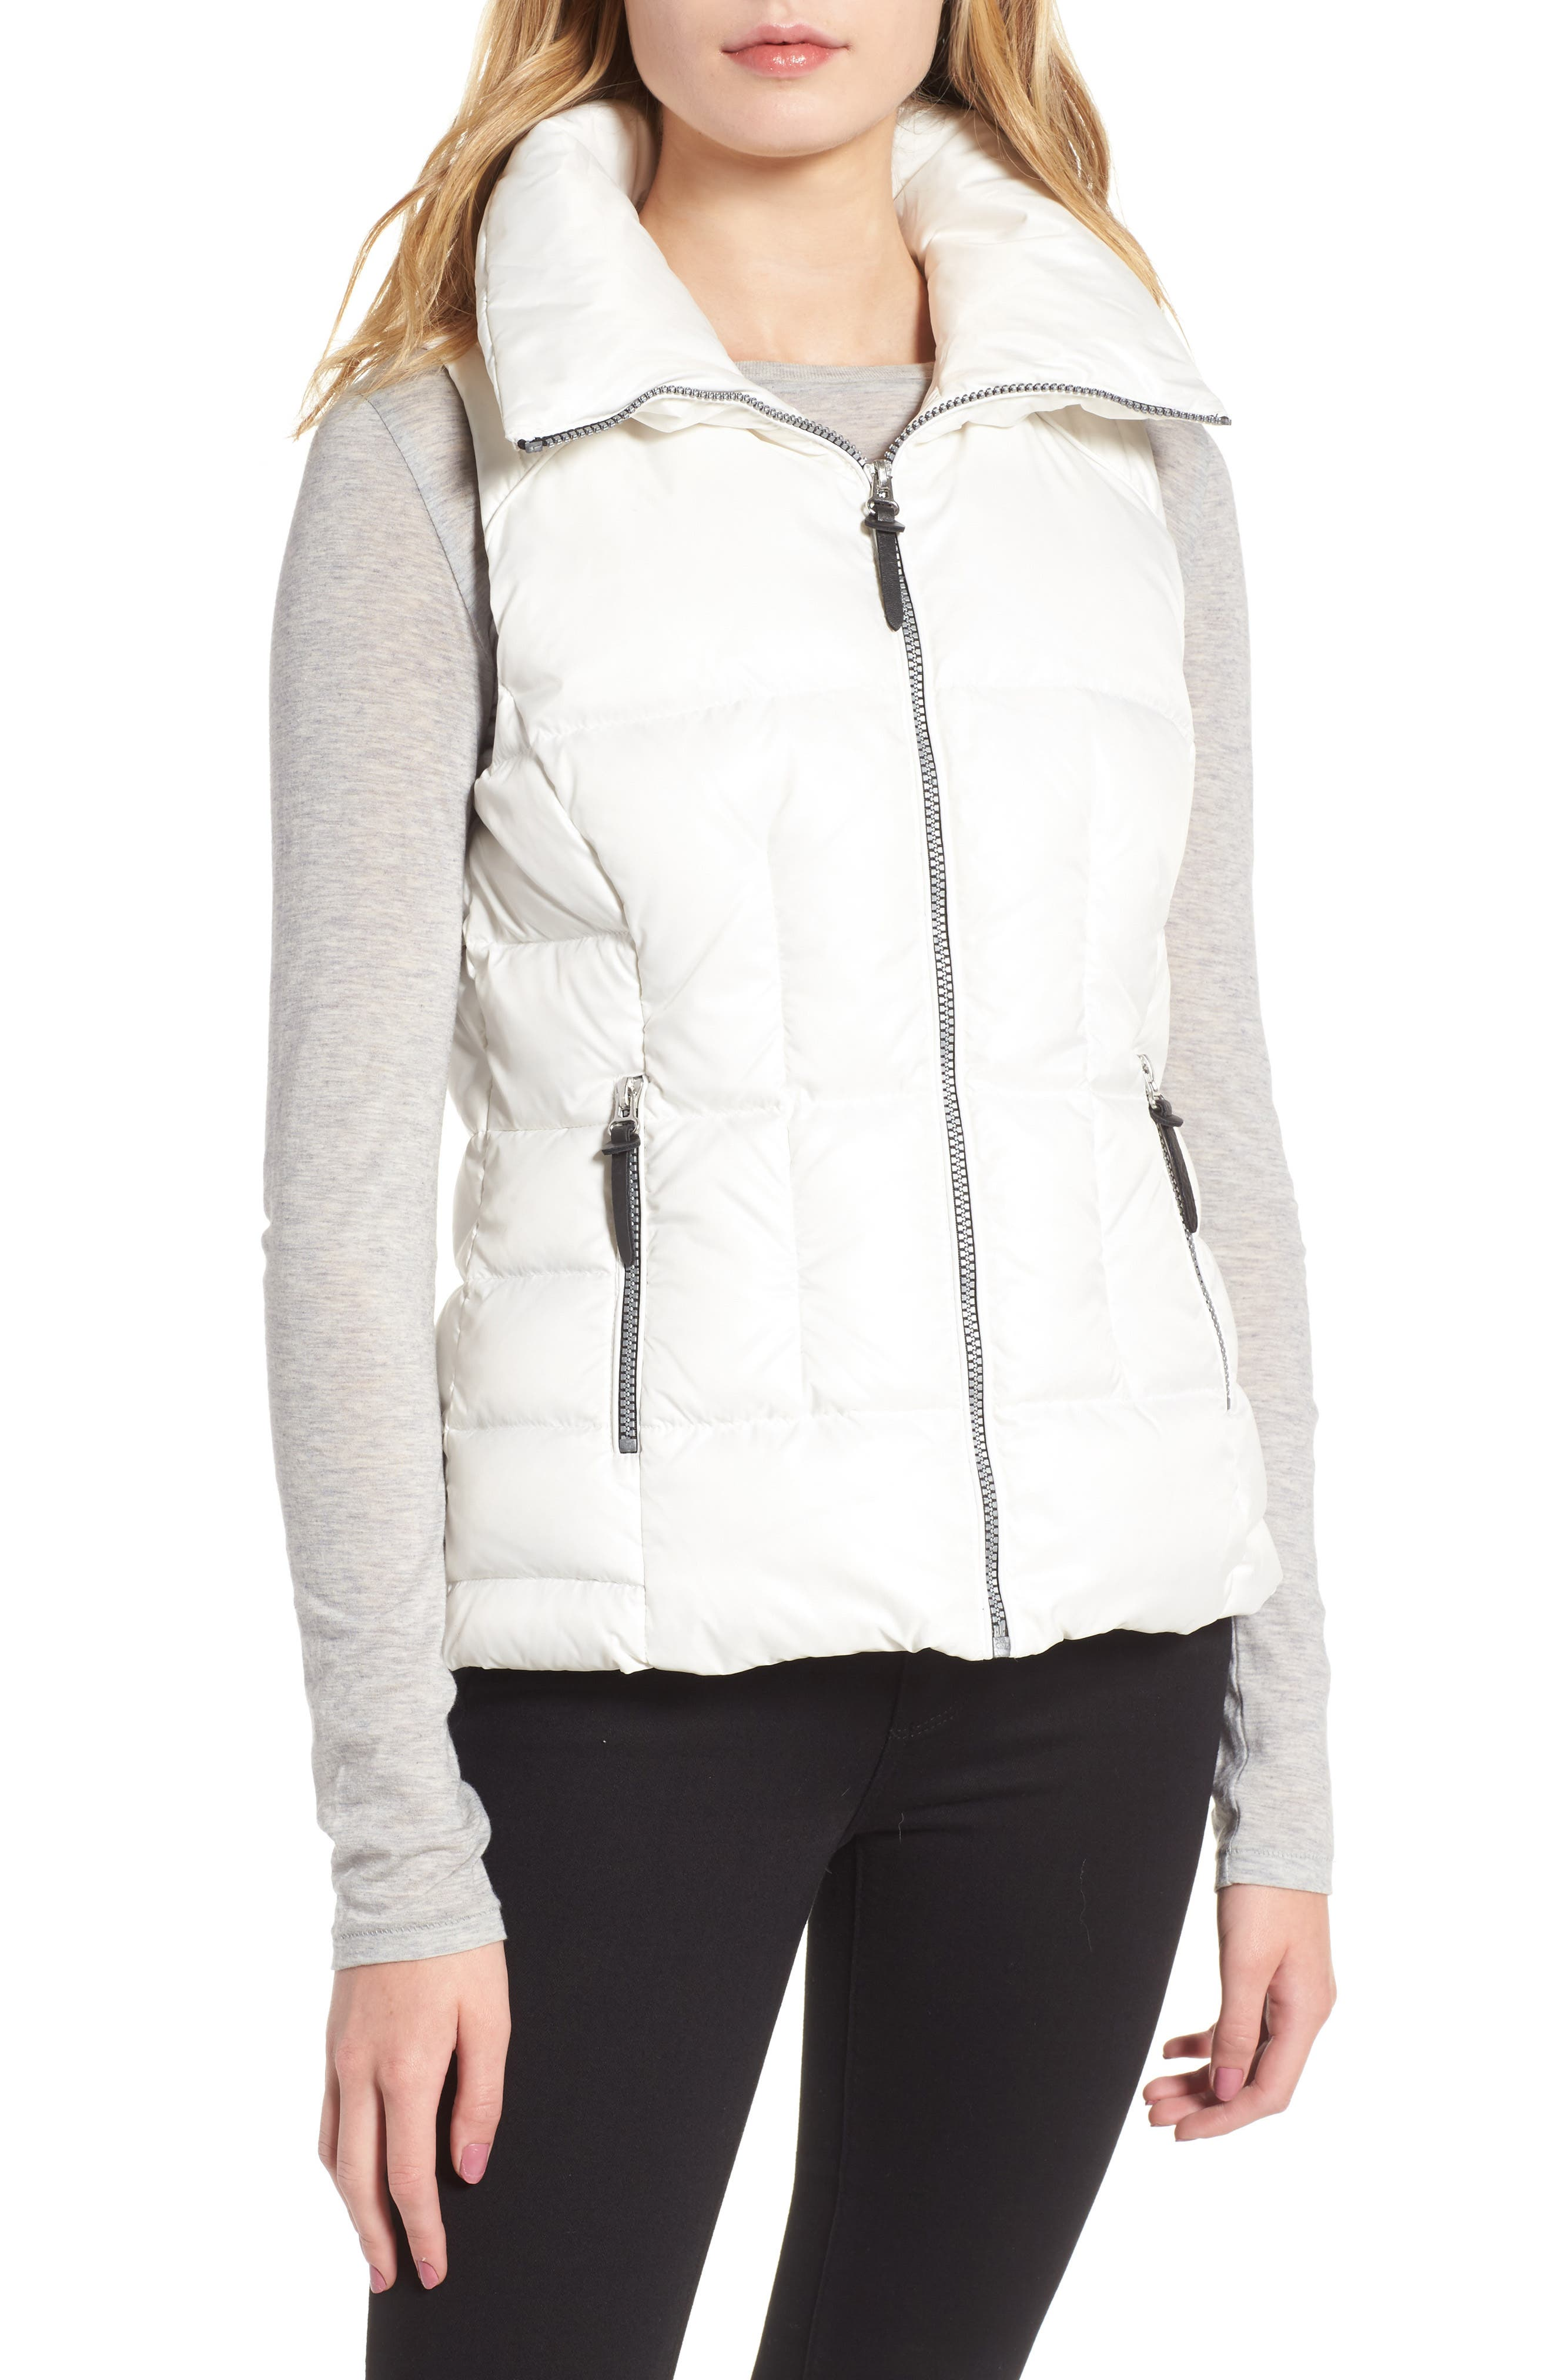 Lanie Puffer Vest with Faux Fur,                             Alternate thumbnail 4, color,                             White